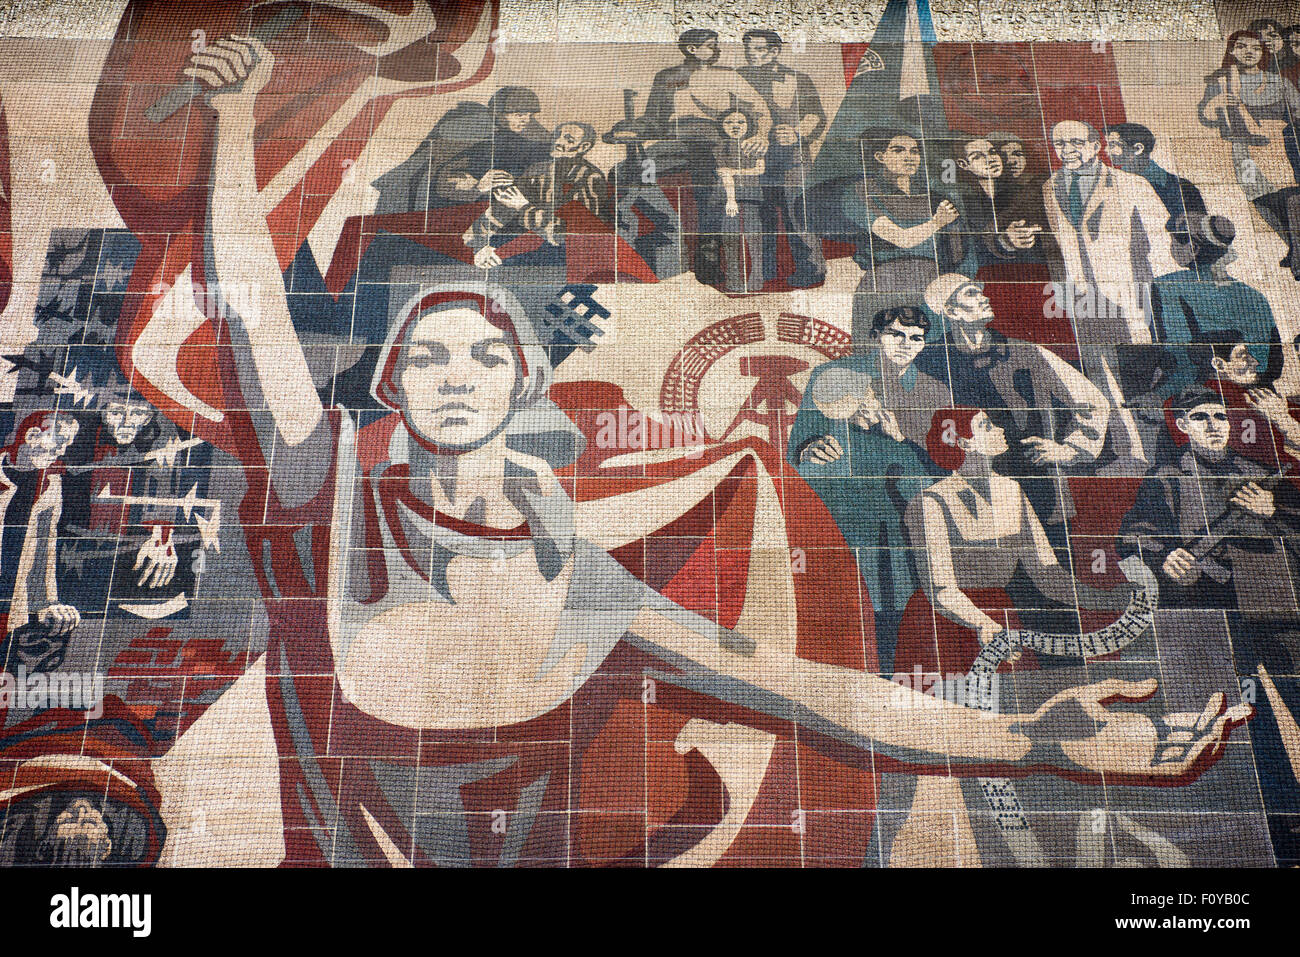 Mural 'Der Weg der Roten Fahne' at the Western side of the Kulturpalast, Dresden, Saxony, Germany - Stock Image